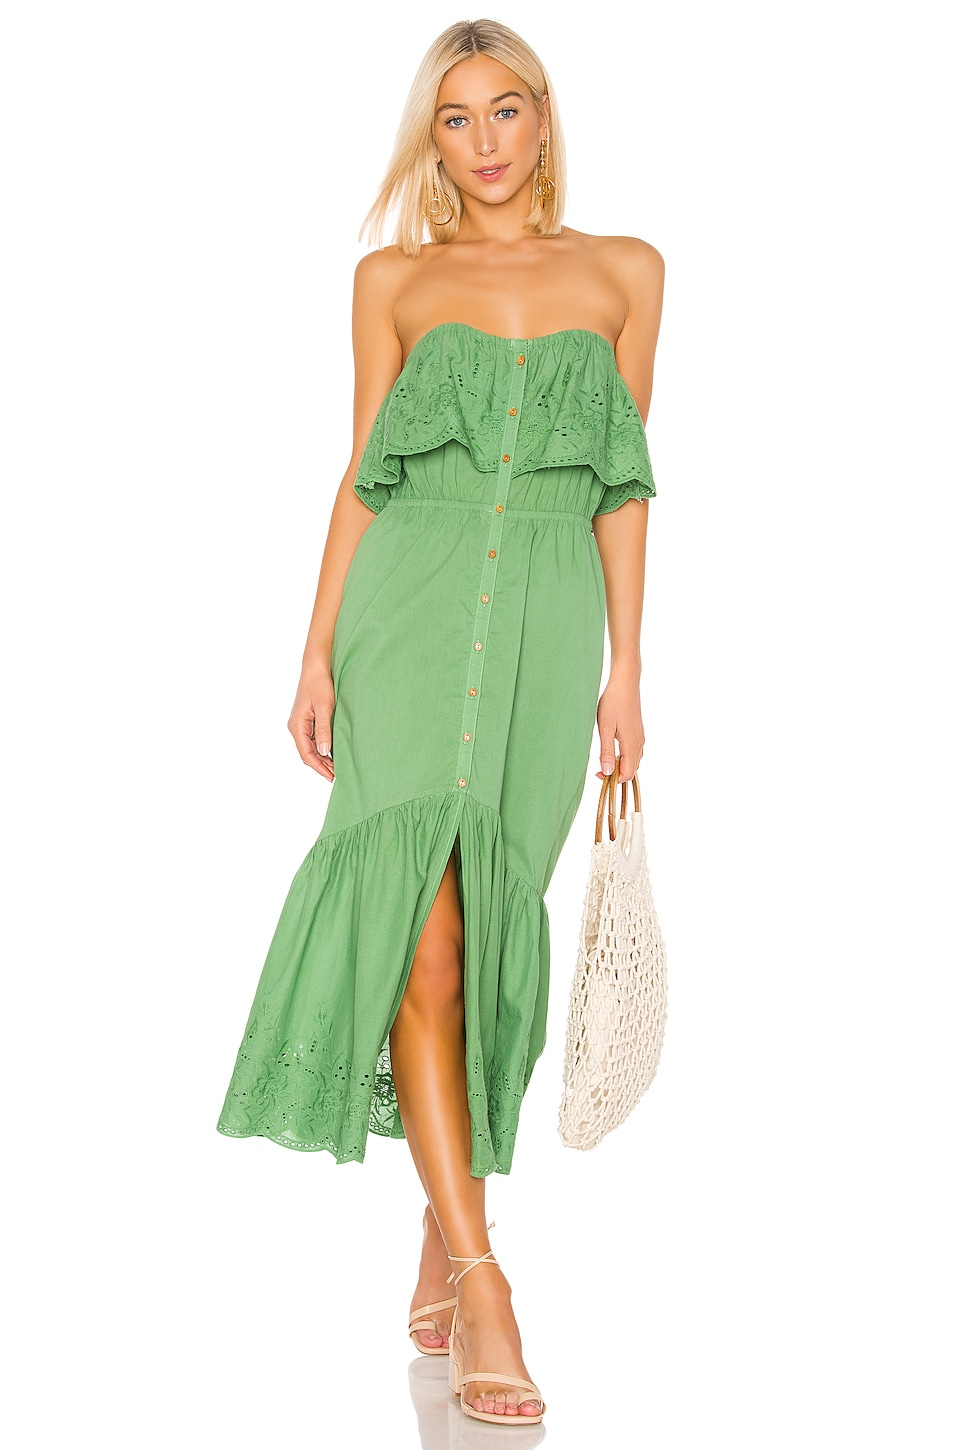 MINKPINK Purity Strapless Midi Dress in Greenery